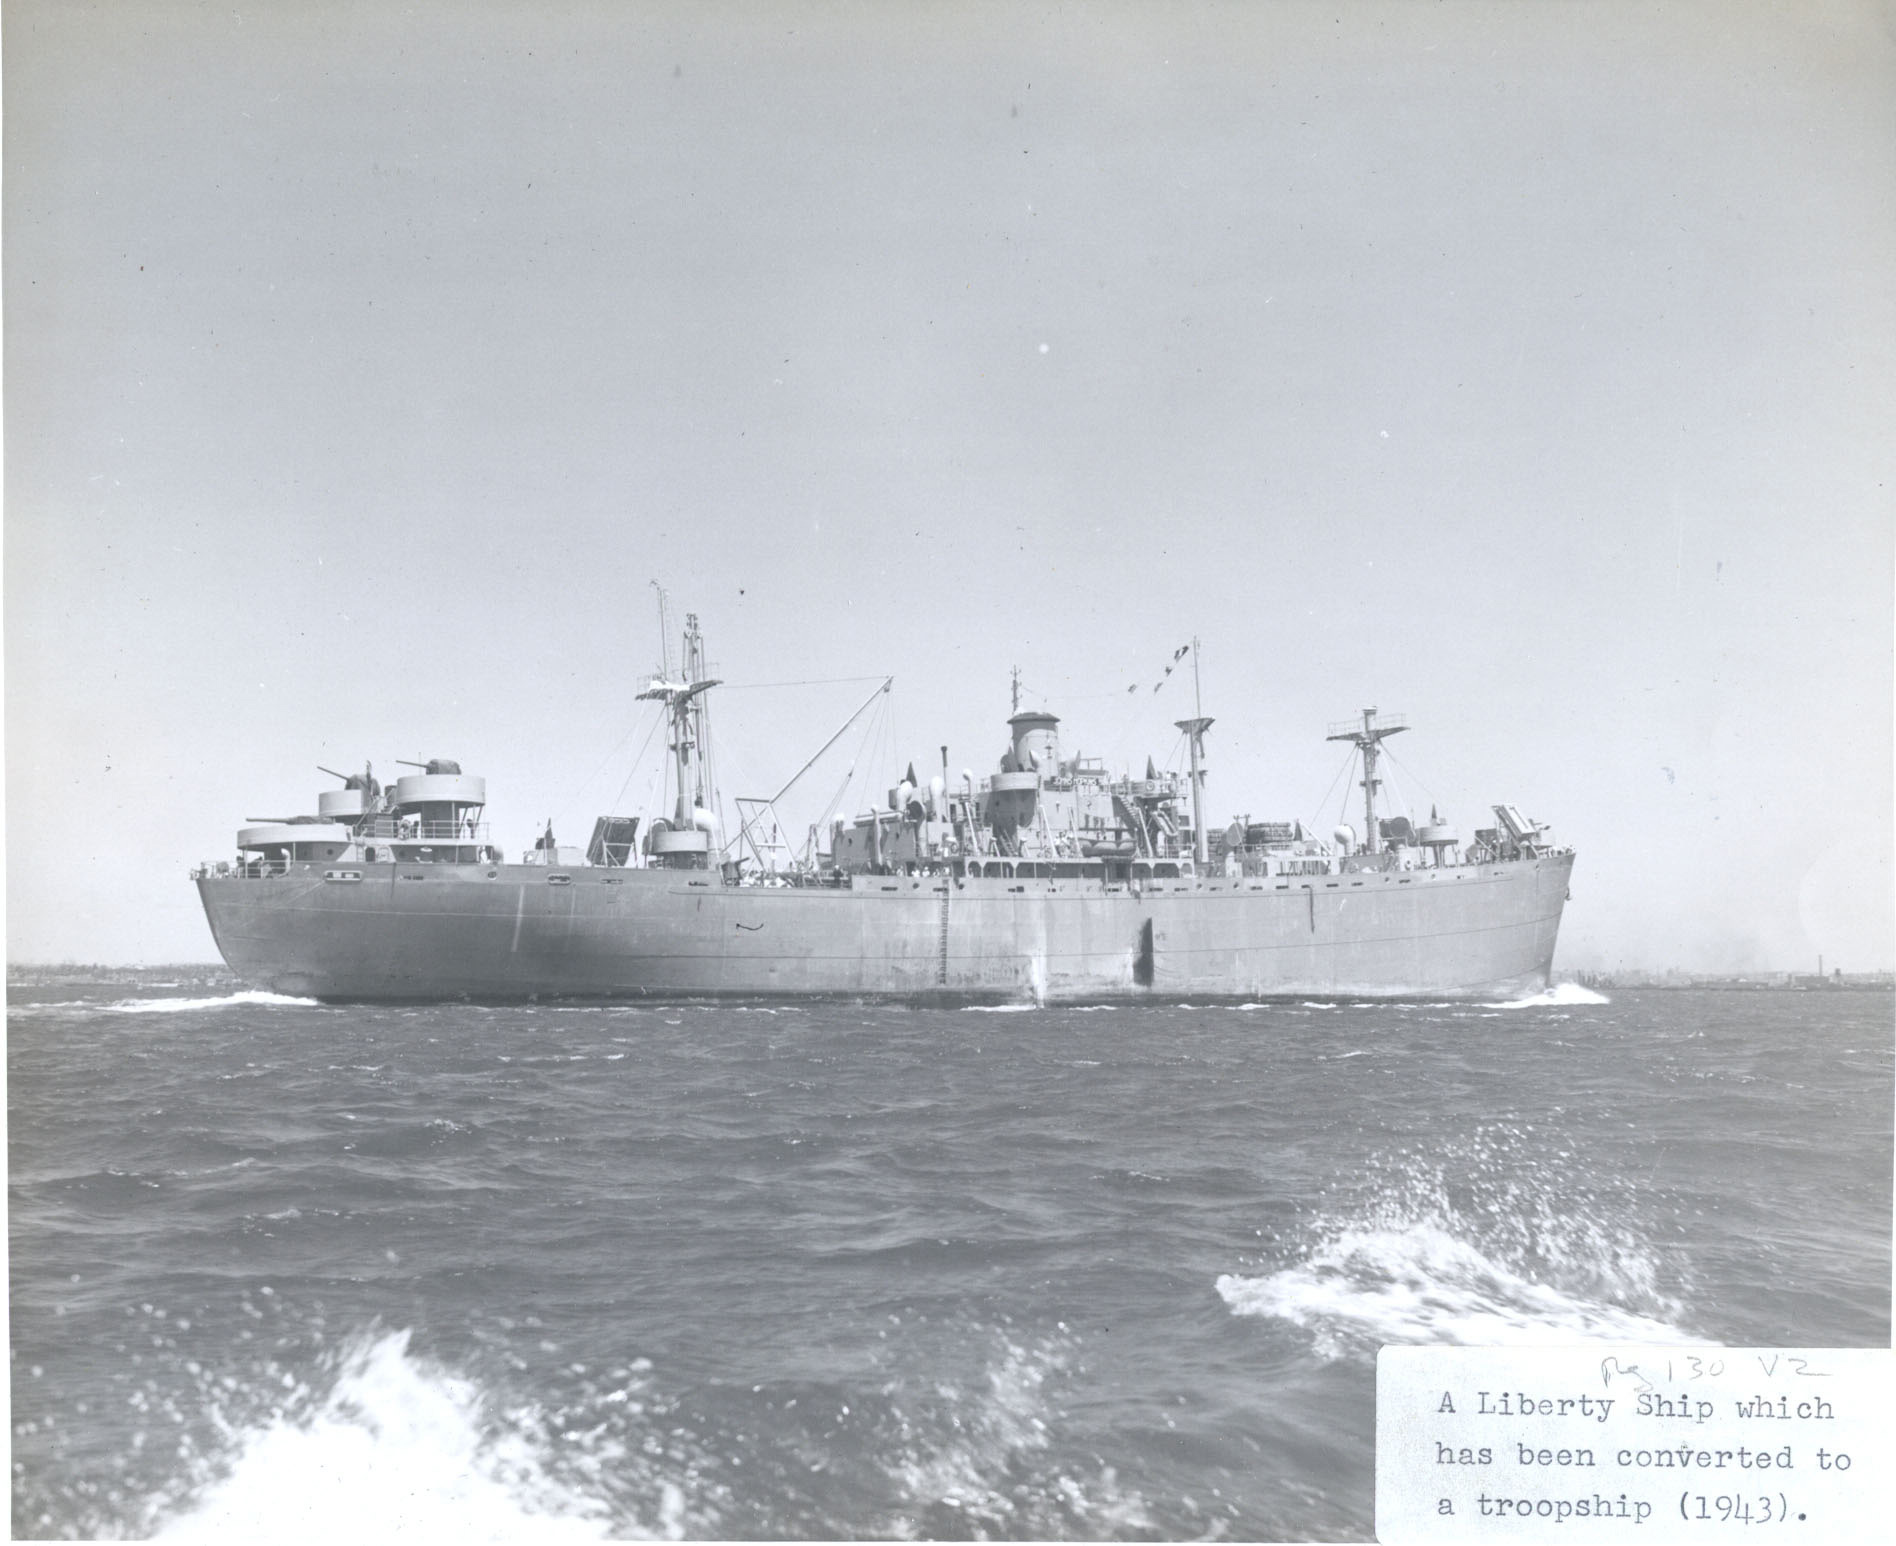 Ships build under the Merchant Marine Act of 1936